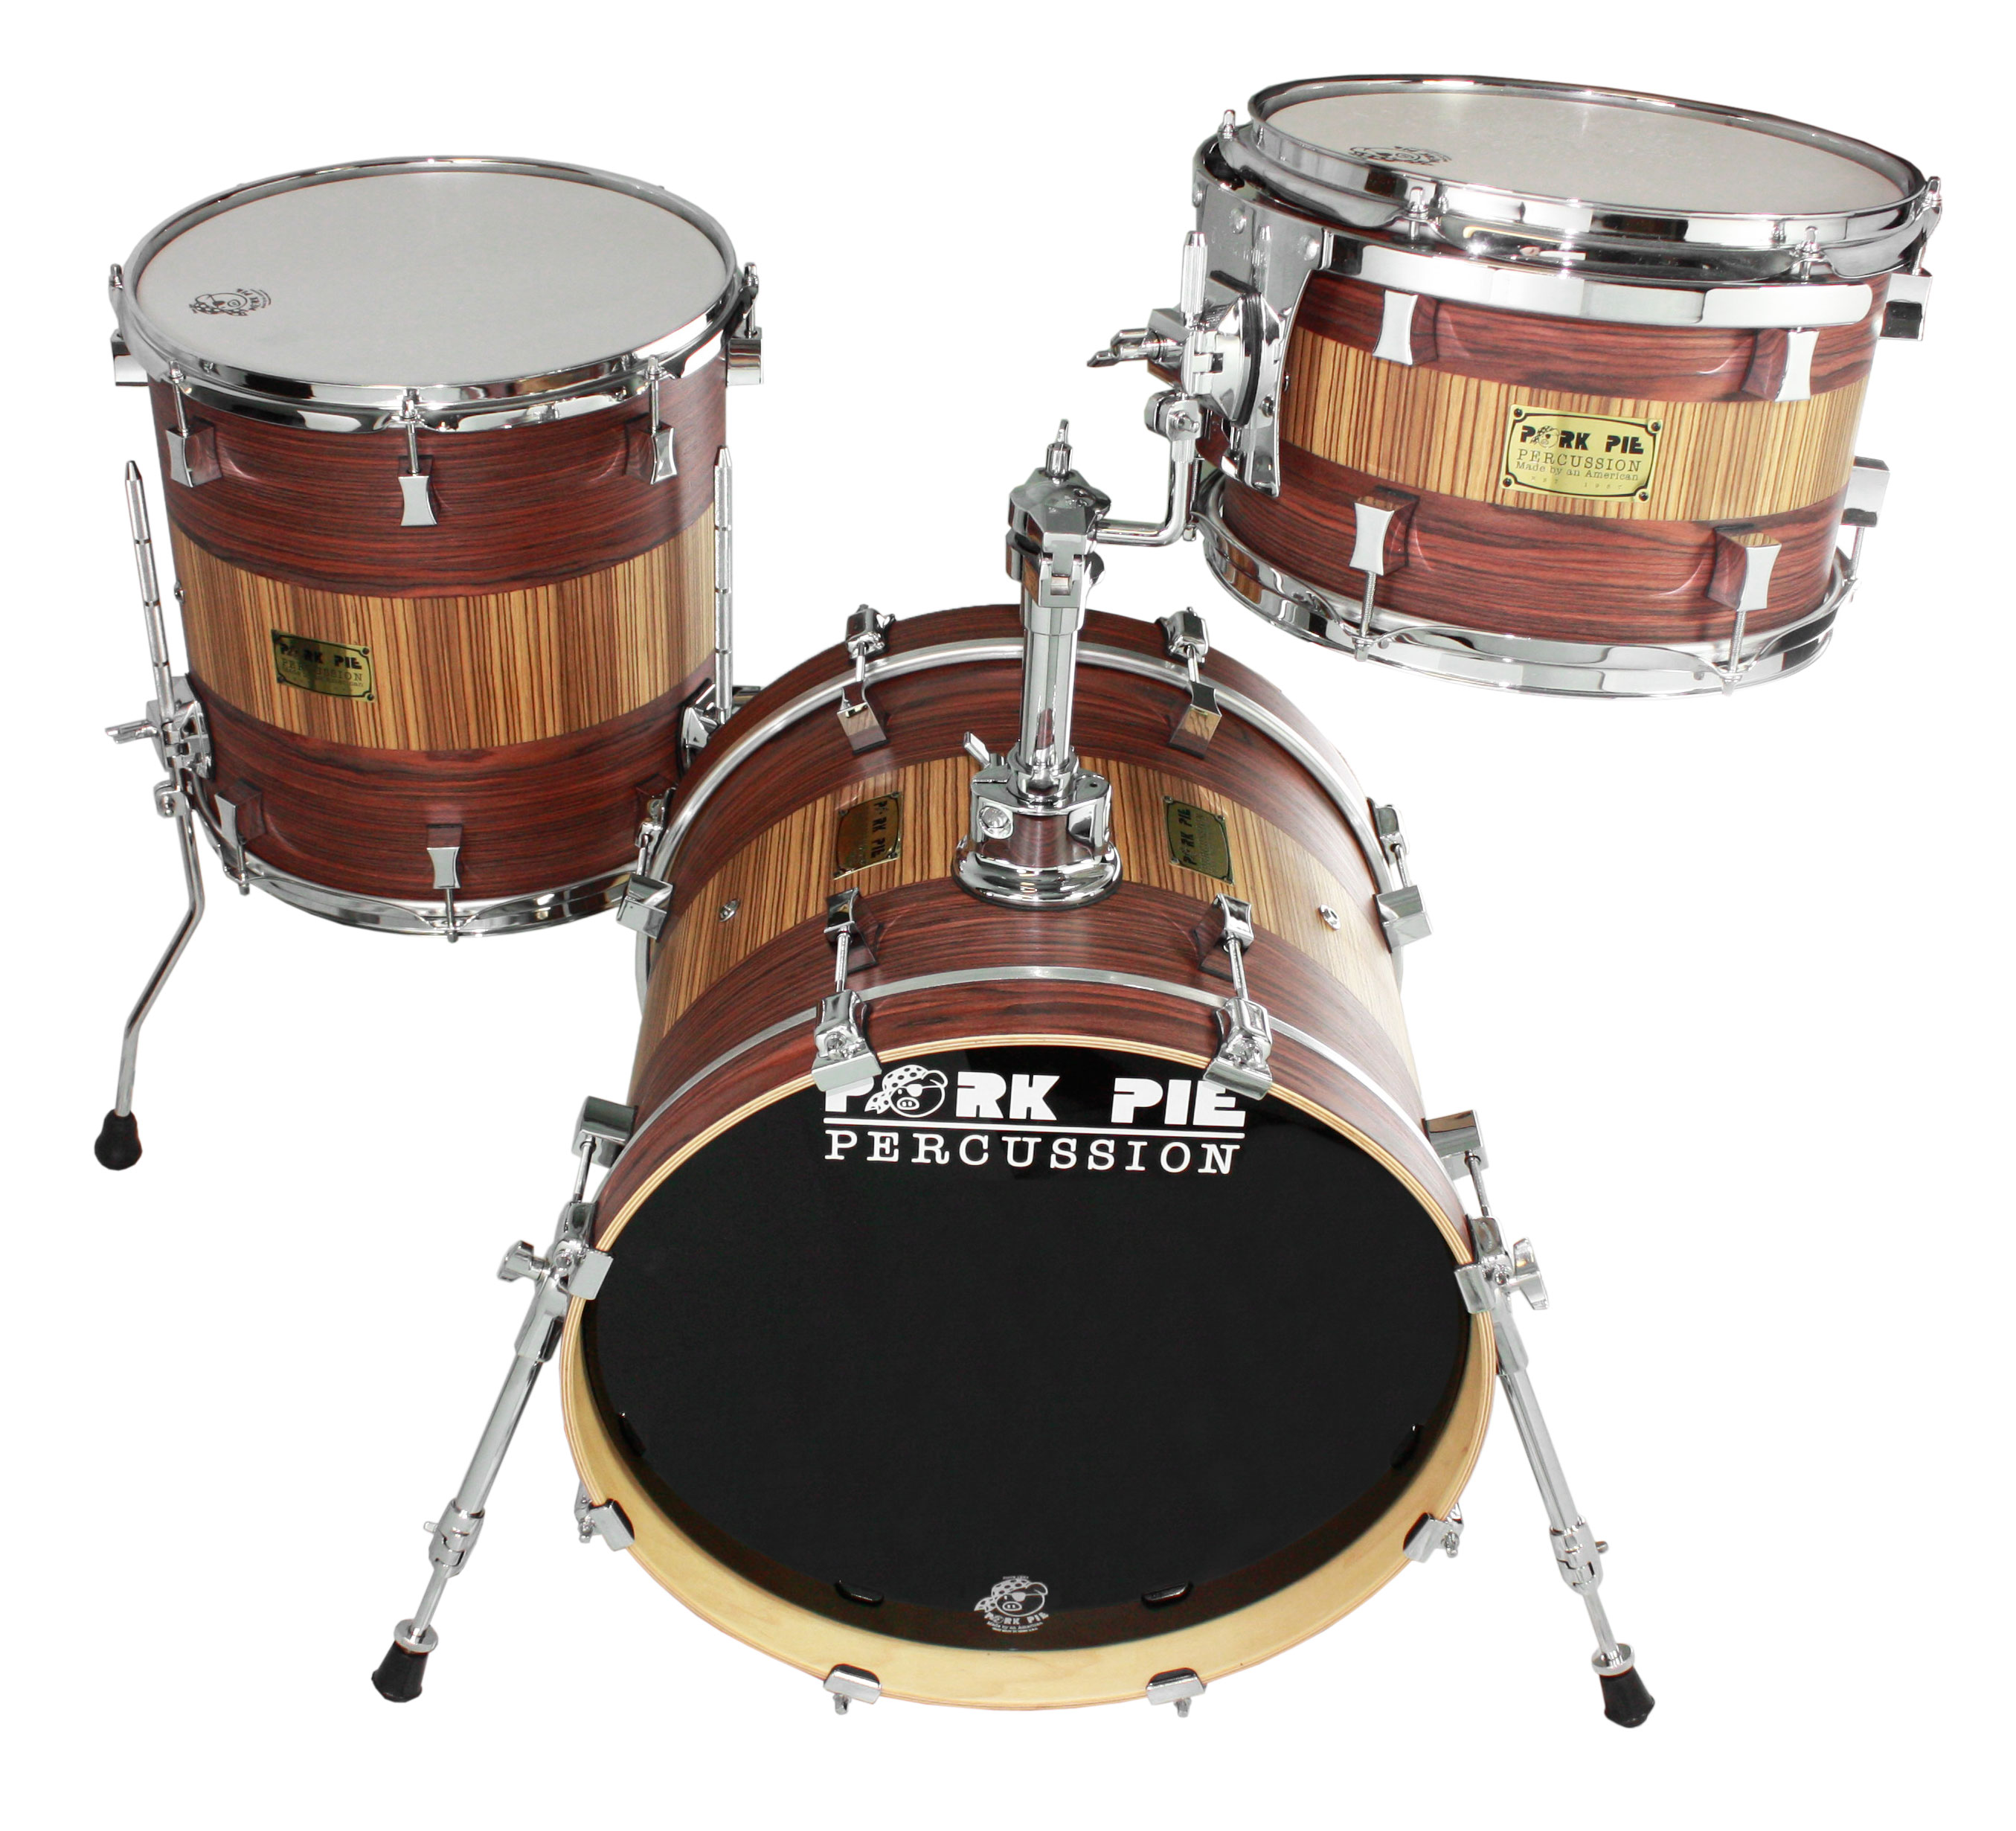 "Pork Pie Percussion USA Bop 3-Piece Drum Set Shell Pack (18"" Bass, 12/14"" Toms) in Rosewood Zebrawood"